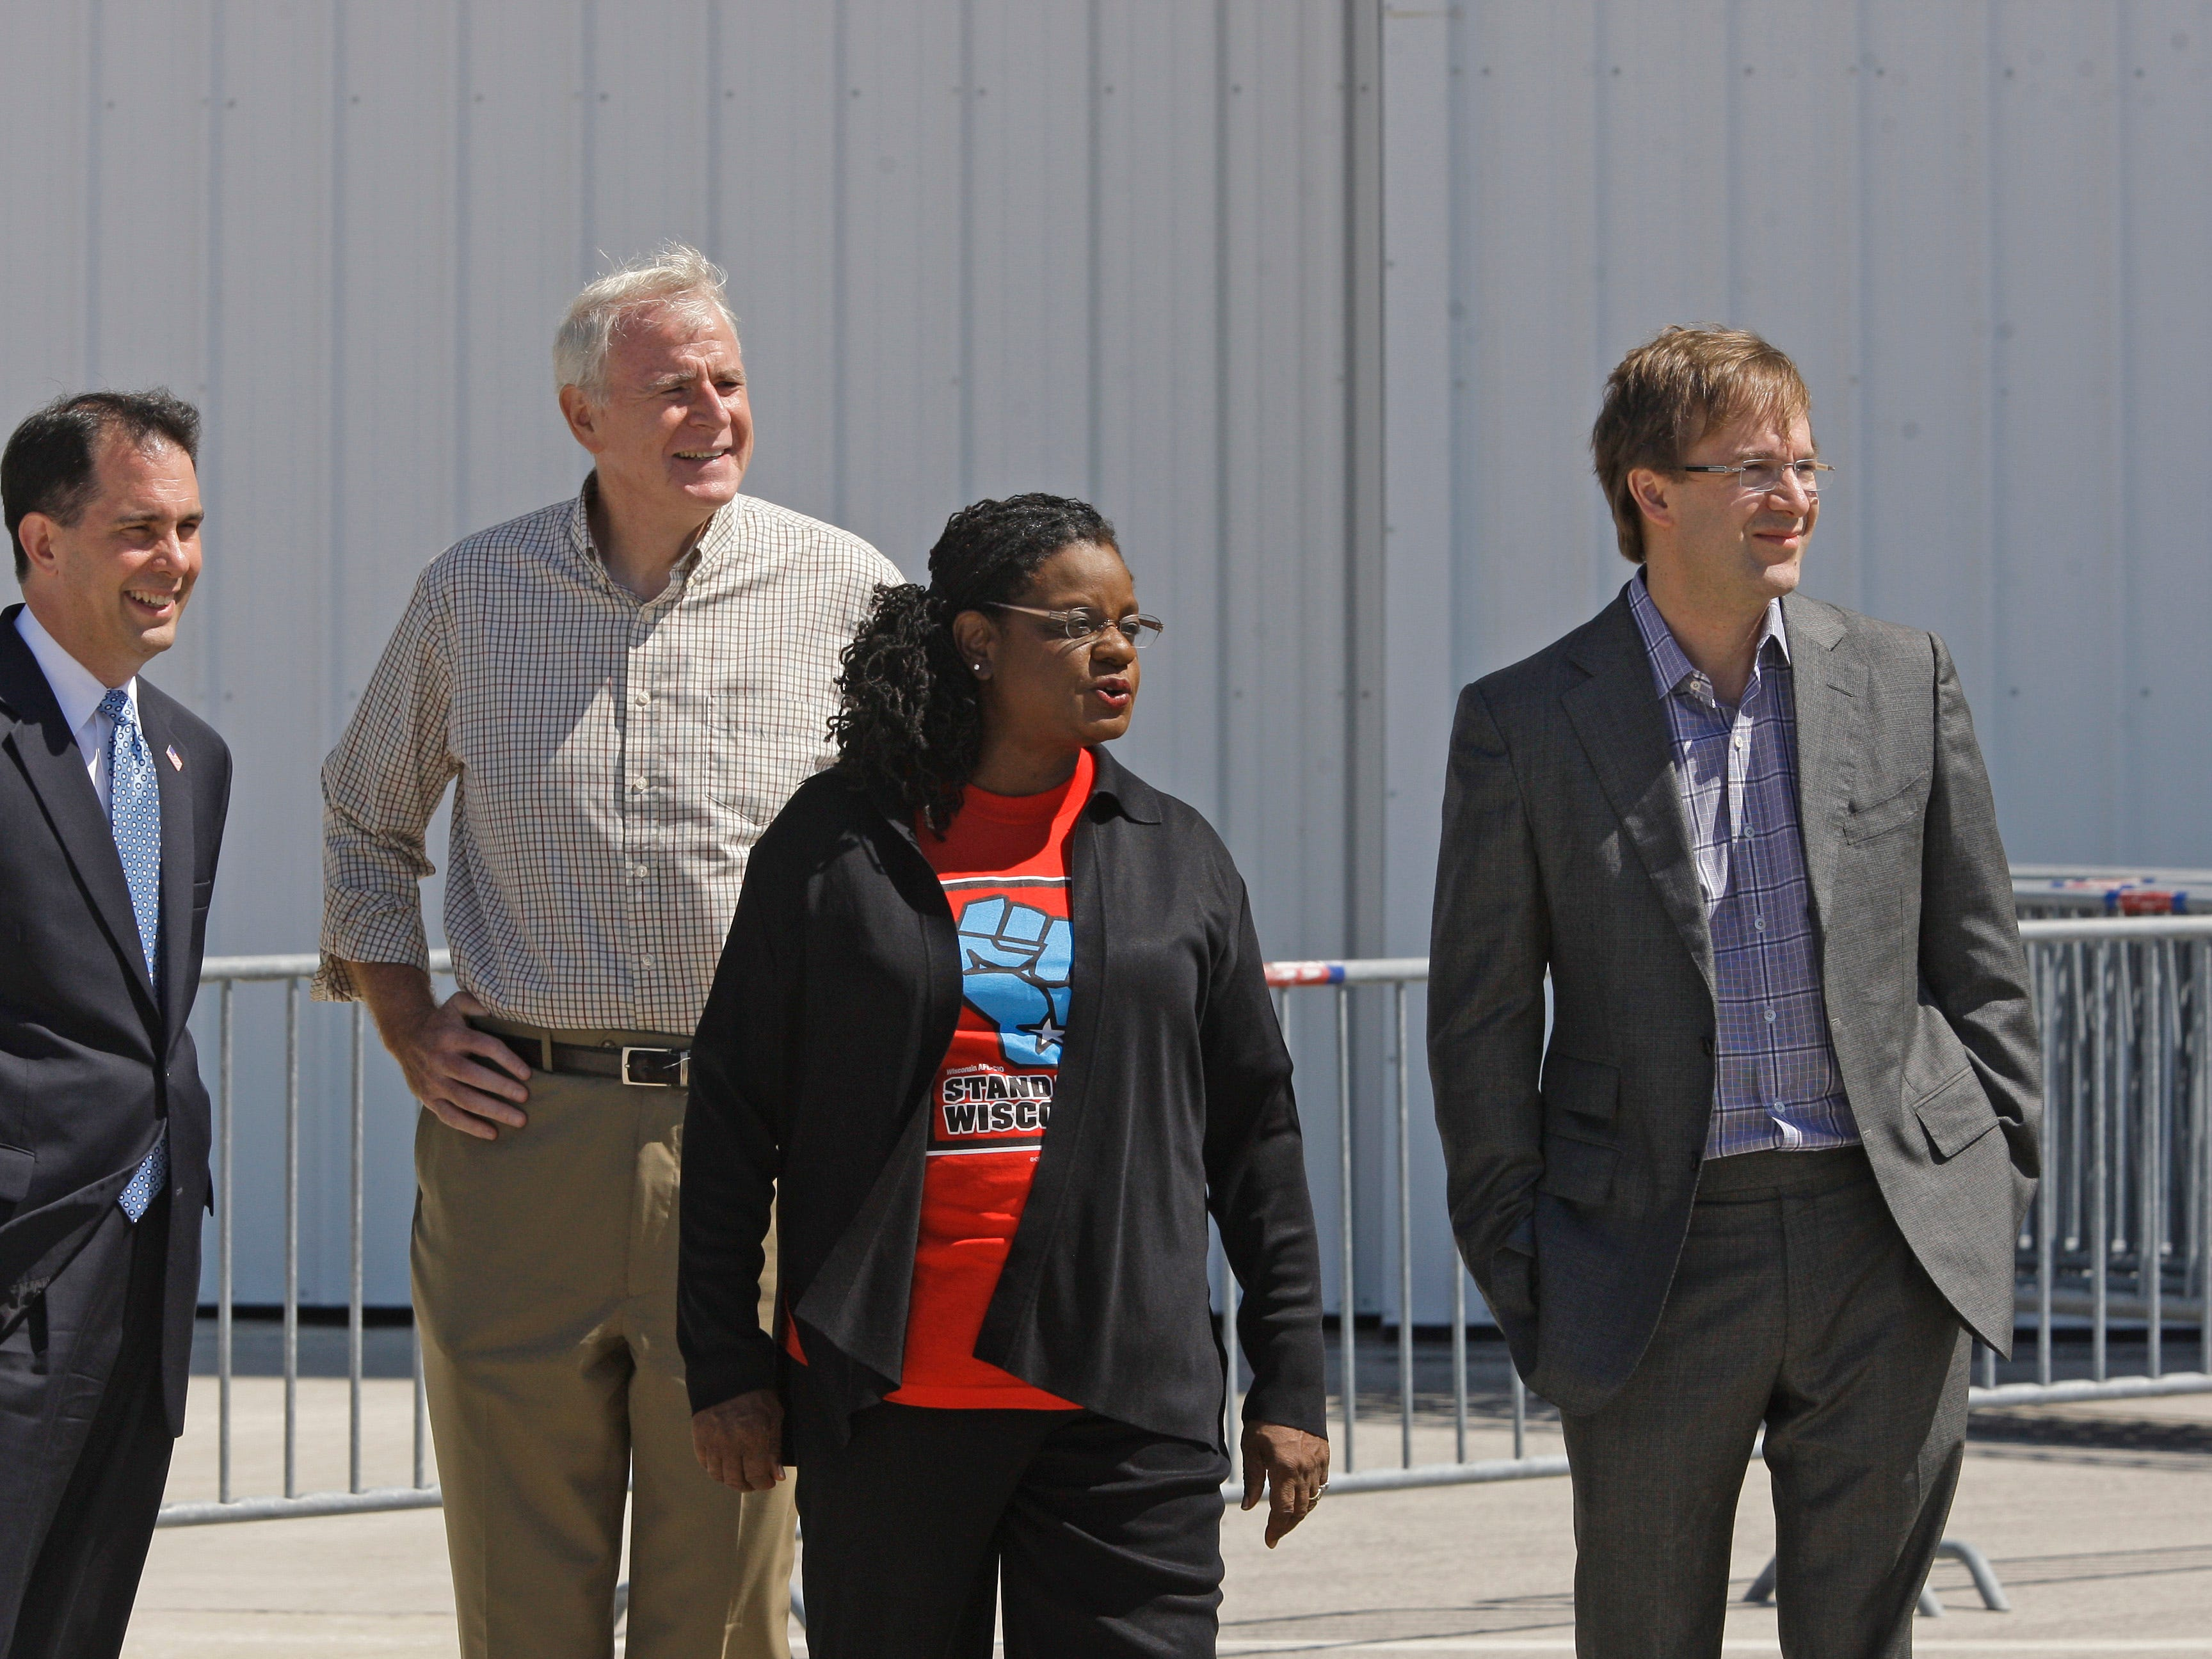 2014: Wisconsin political leaders, Gov. Scott Walker  ( left to right), Milwaukee Mayor Tom Barrett, Senator Gwen Moore and County Executive Chris Abele watch as Air Force One arrives with  President Barack Obama. The President was in town to speak at the Miller Lite Oasis Stage on the Summerfest grounds during Laborfest on Labor Day